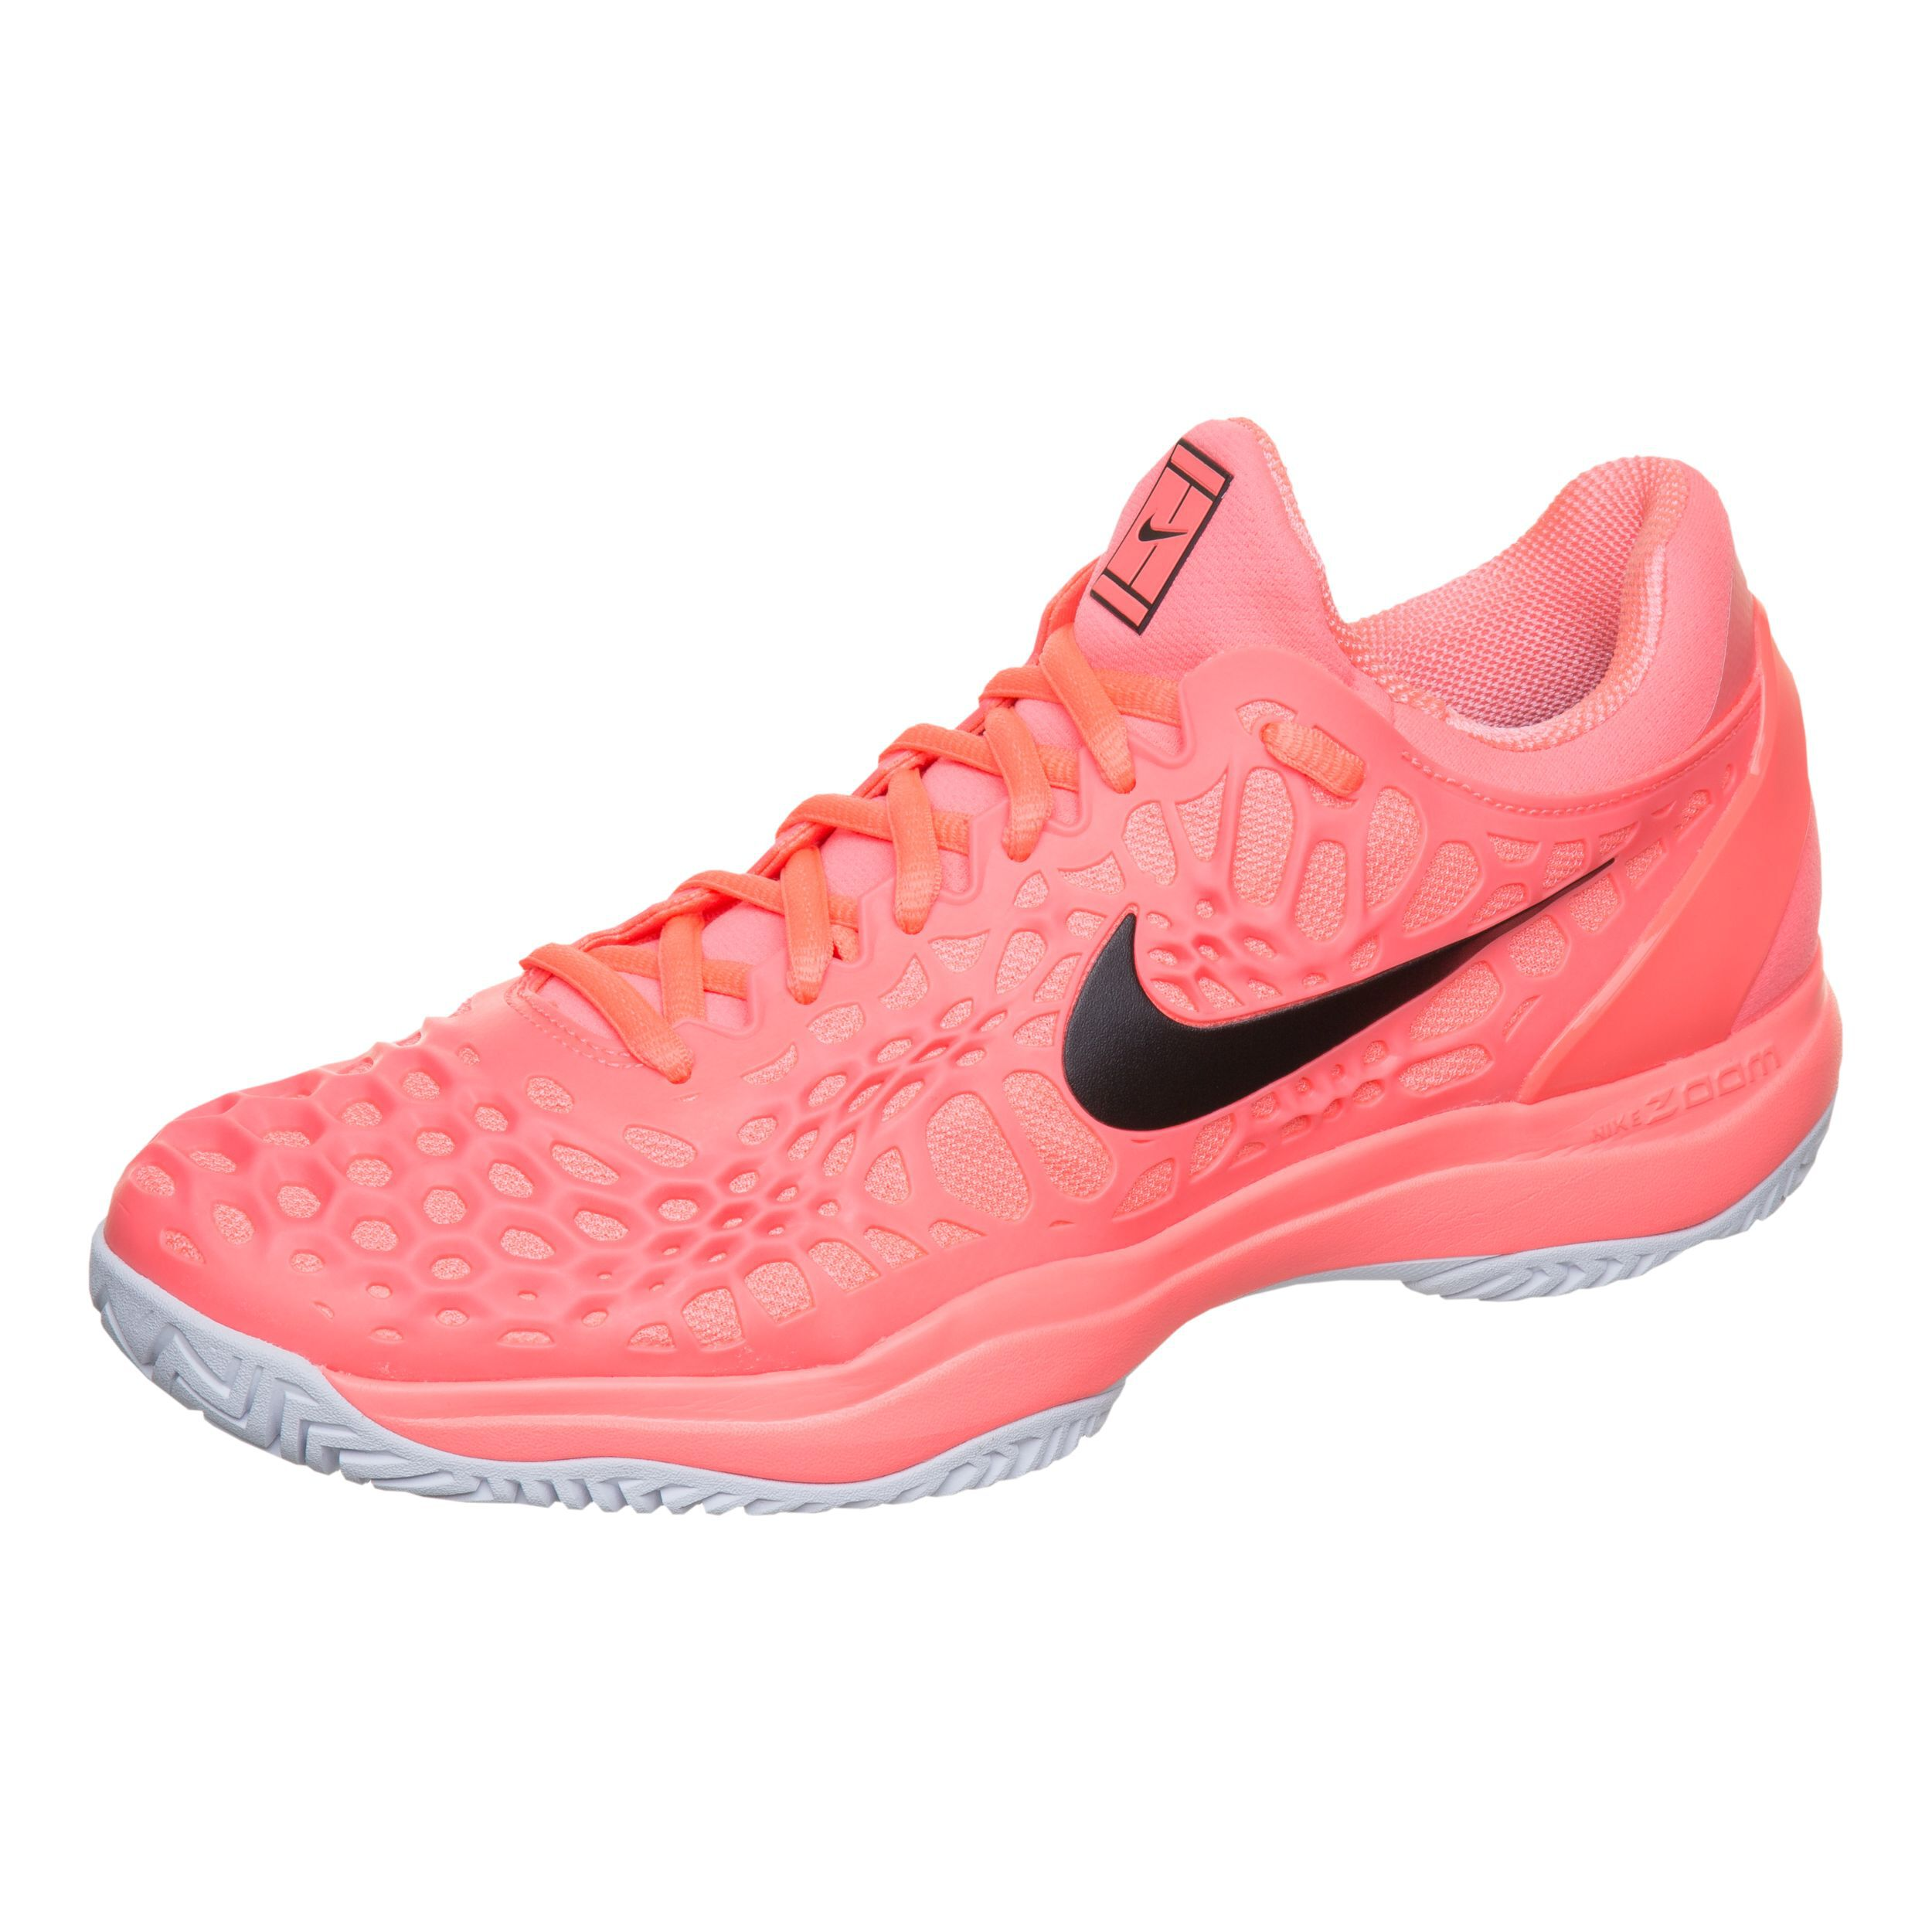 Nike Zoom Cage 3 Chaussure Tout Terrain Hommes Corail